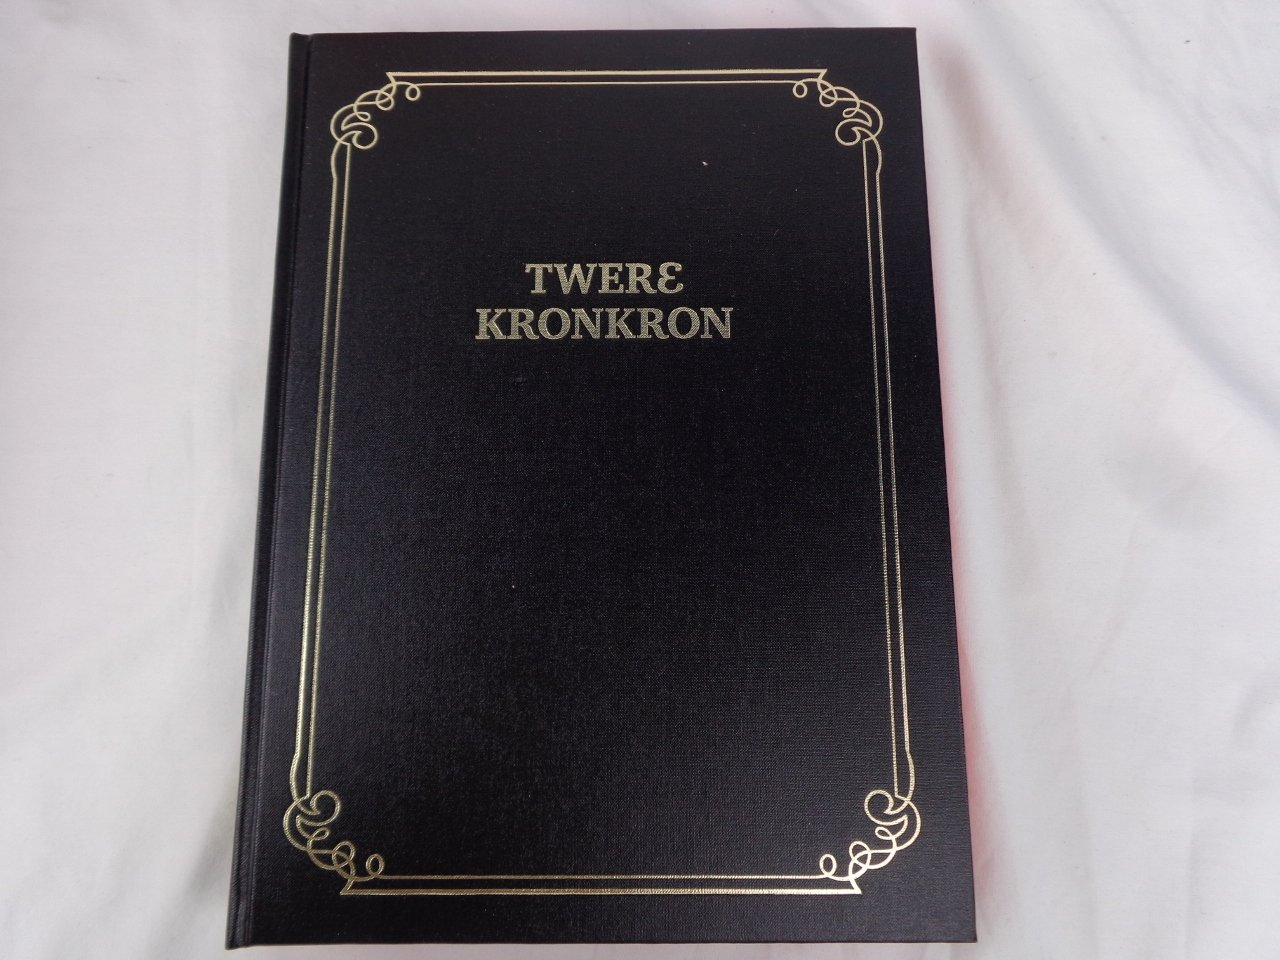 Download Asante Twi Pulpit Bible published as Twere Kronkron - The Words of Christ in Red / Huge Size, Maps, Foot Notes, Illustrations 083P ebook